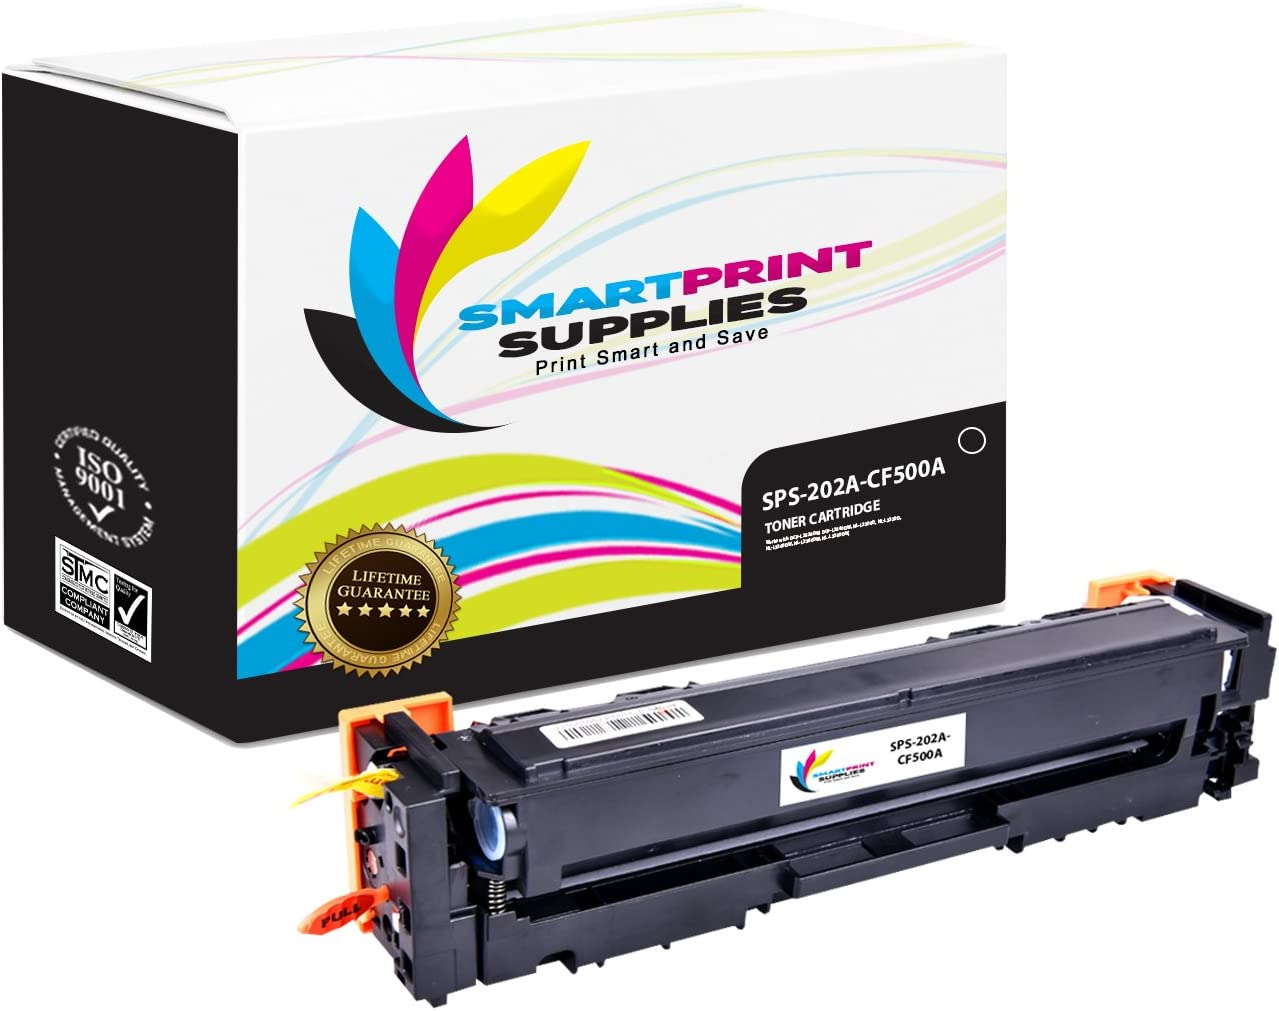 8 Pack Smart Print Supplies Compatible 202A Toner Cartridge Replacement for HP Color Laserjet Pro MFP M280nw M254dw M281fdw Printers CF500A Black, CF501A Cyan, CF502A Magenta, CF503A Yellow